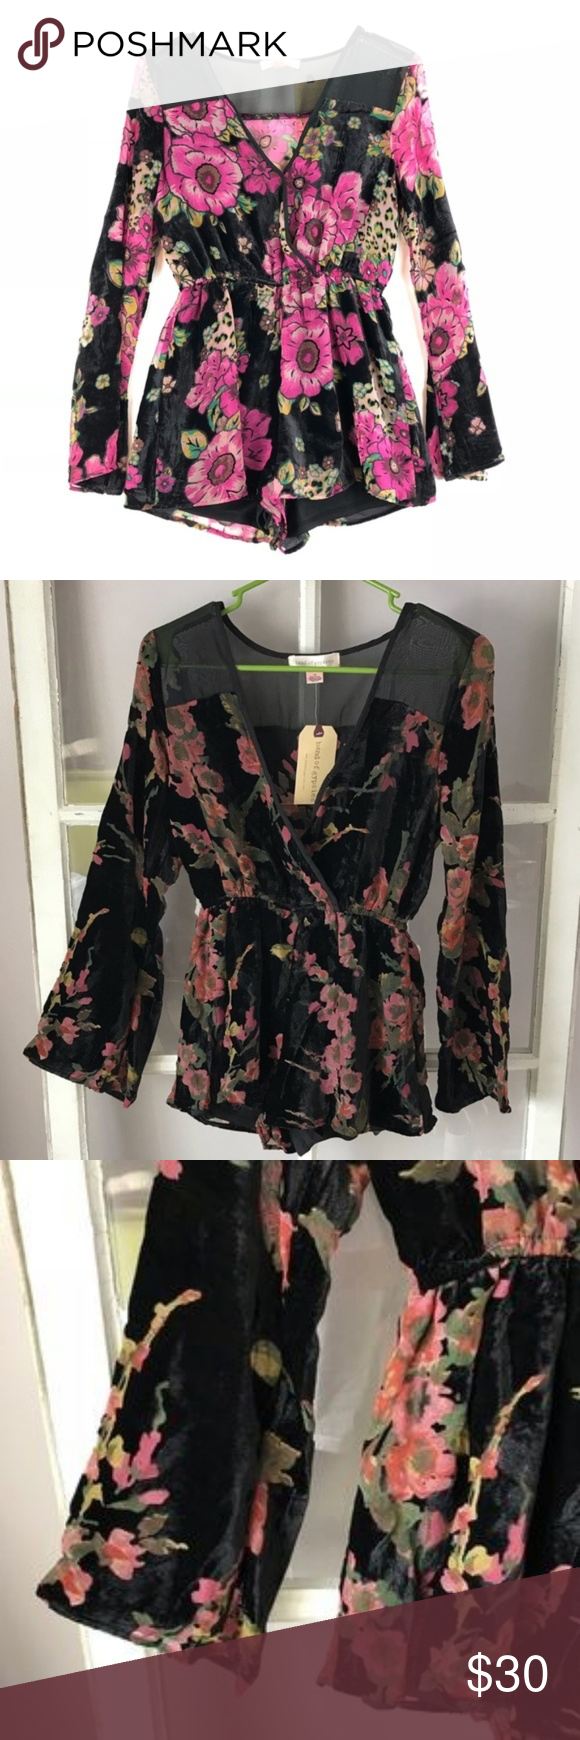 77f69afea035 Band of Gypsies Floral Velvet Romper Blk sz Sm NEW NEW Stylish long sleeve  romper with